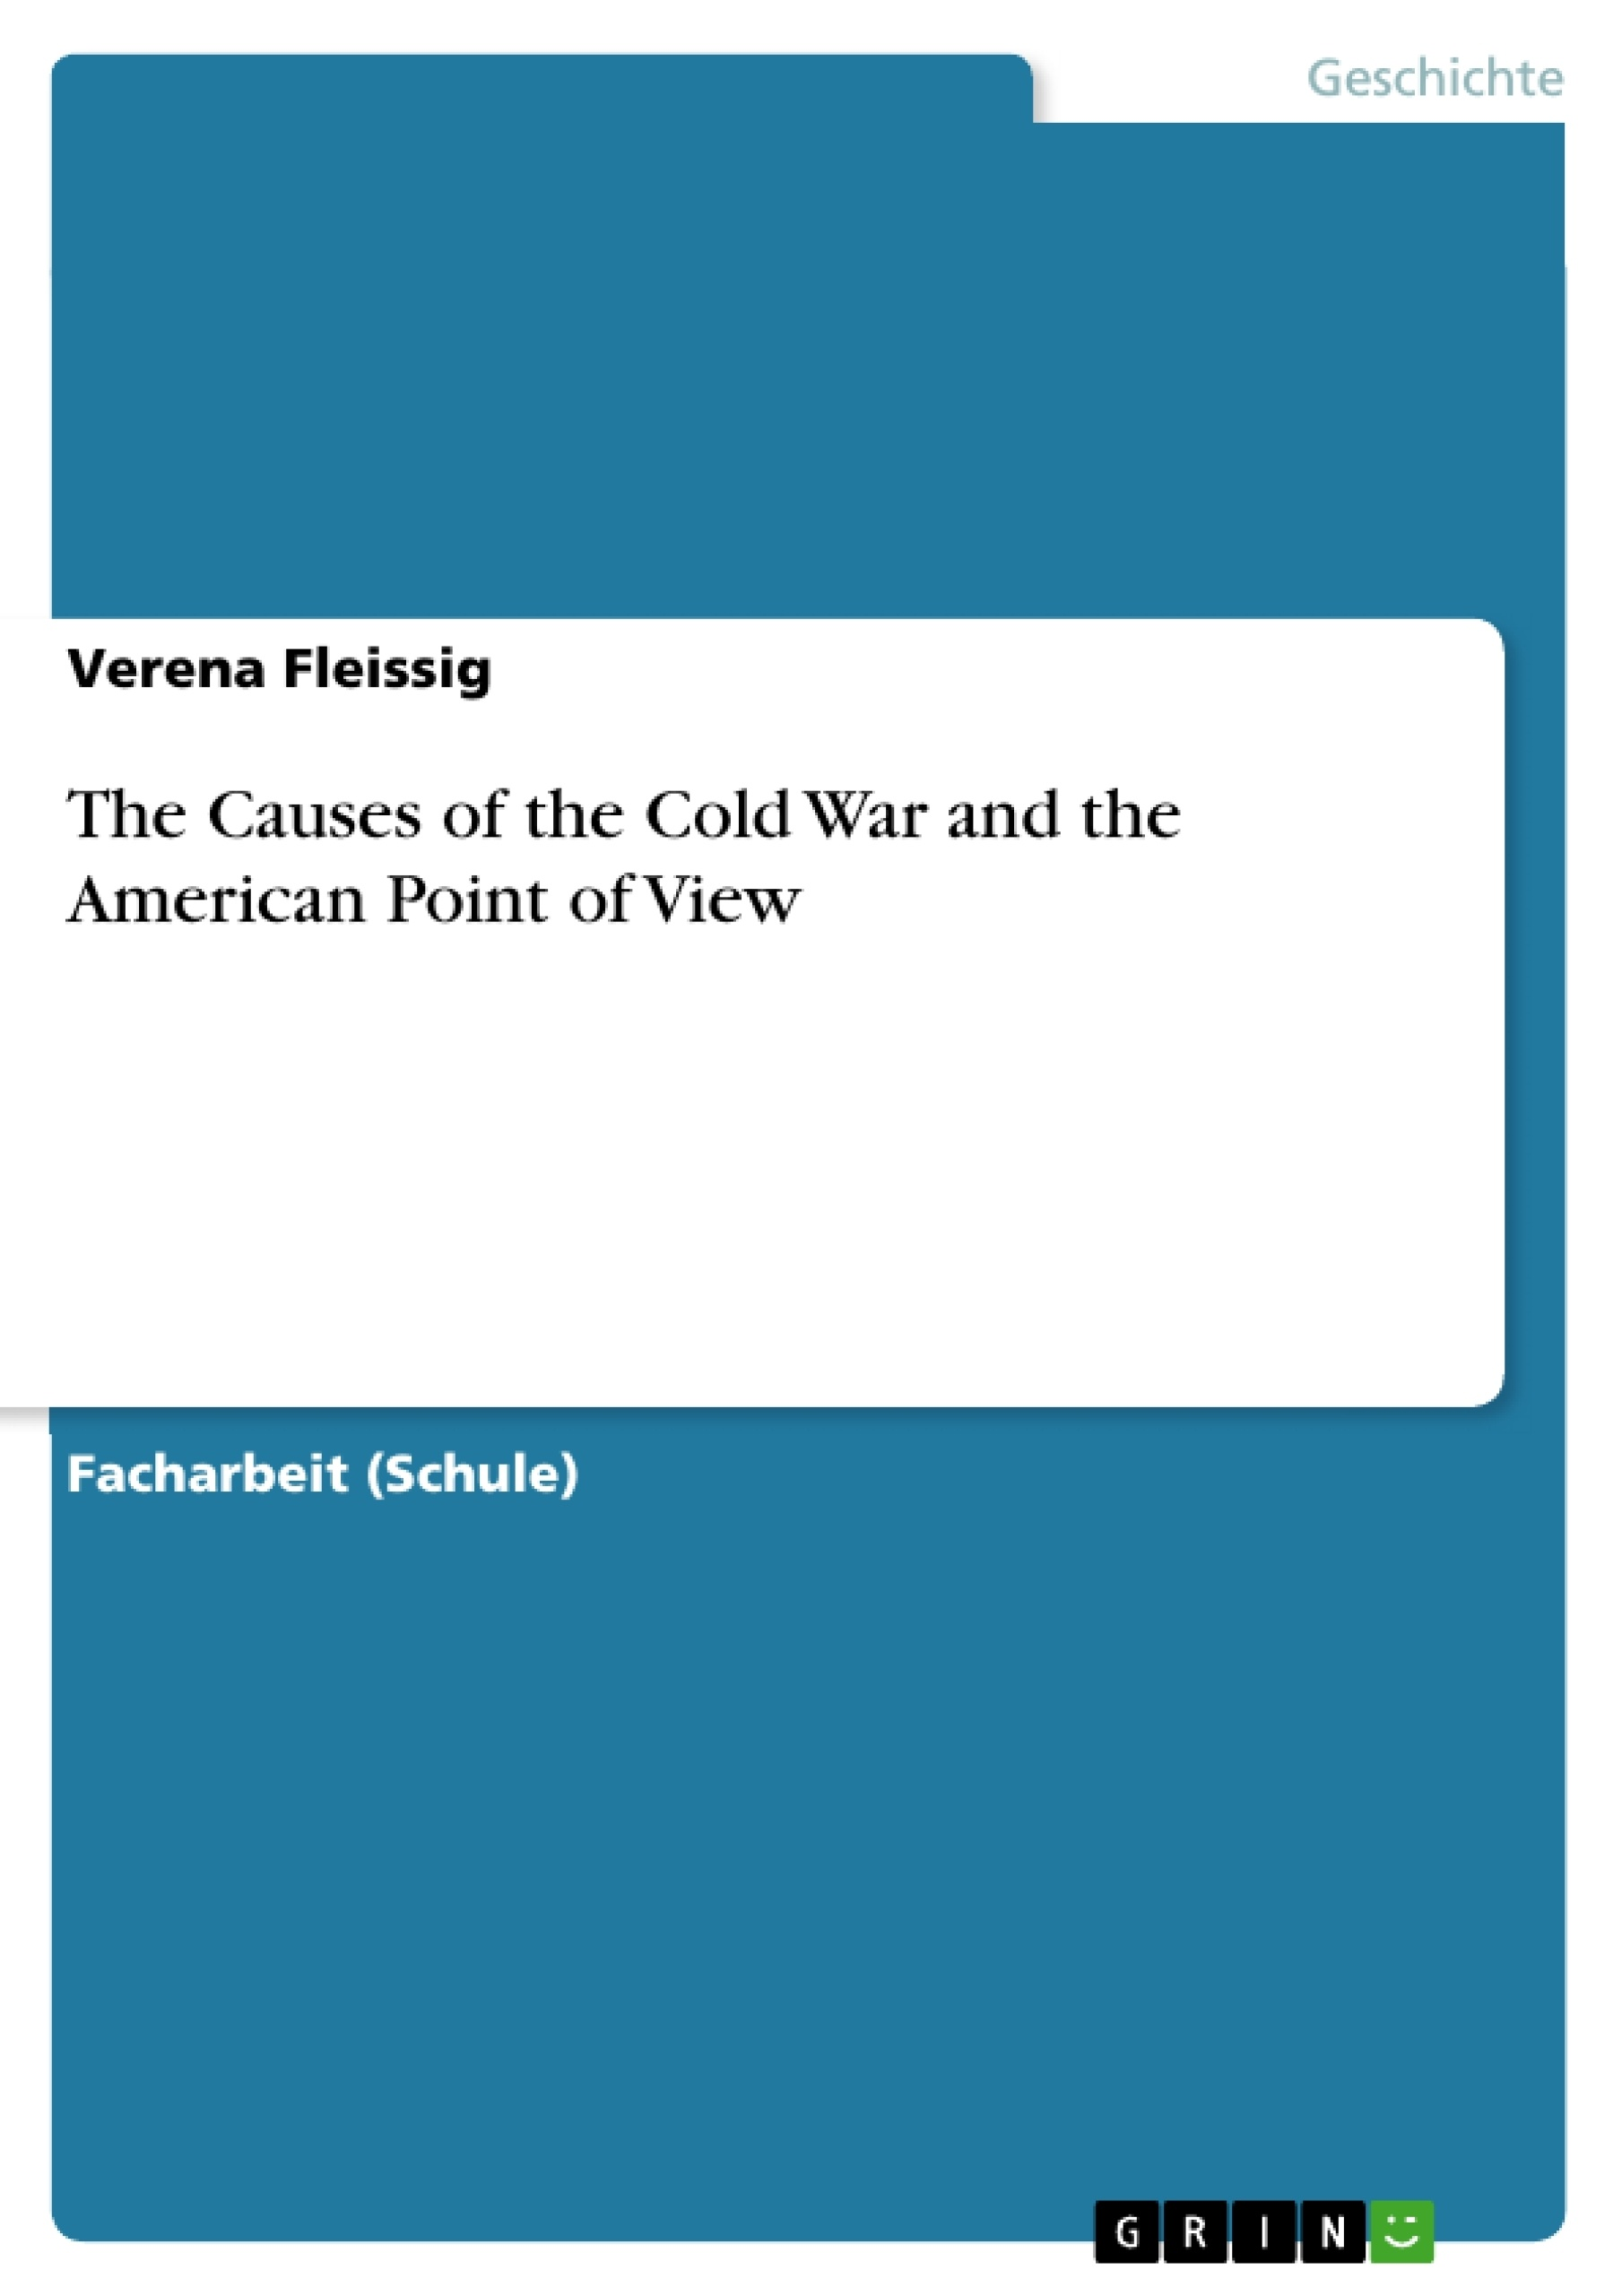 The Causes of the Cold War and the American Point of View